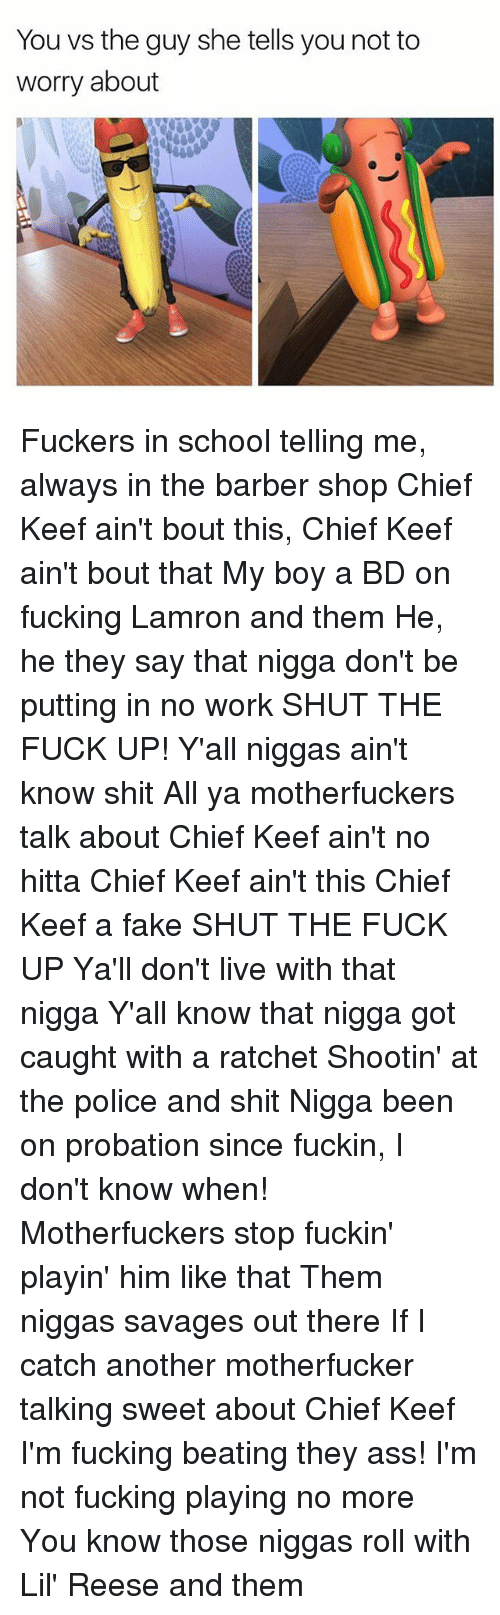 Barber Shop: You vs the guy she tells you not to  worry about Fuckers in school telling me, always in the barber shop Chief Keef ain't bout this, Chief Keef ain't bout that My boy a BD on fucking Lamron and them He, he they say that nigga don't be putting in no work SHUT THE FUCK UP! Y'all niggas ain't know shit All ya motherfuckers talk about Chief Keef ain't no hitta Chief Keef ain't this Chief Keef a fake SHUT THE FUCK UP Ya'll don't live with that nigga Y'all know that nigga got caught with a ratchet Shootin' at the police and shit Nigga been on probation since fuckin, I don't know when! Motherfuckers stop fuckin' playin' him like that Them niggas savages out there If I catch another motherfucker talking sweet about Chief Keef I'm fucking beating they ass! I'm not fucking playing no more You know those niggas roll with Lil' Reese and them